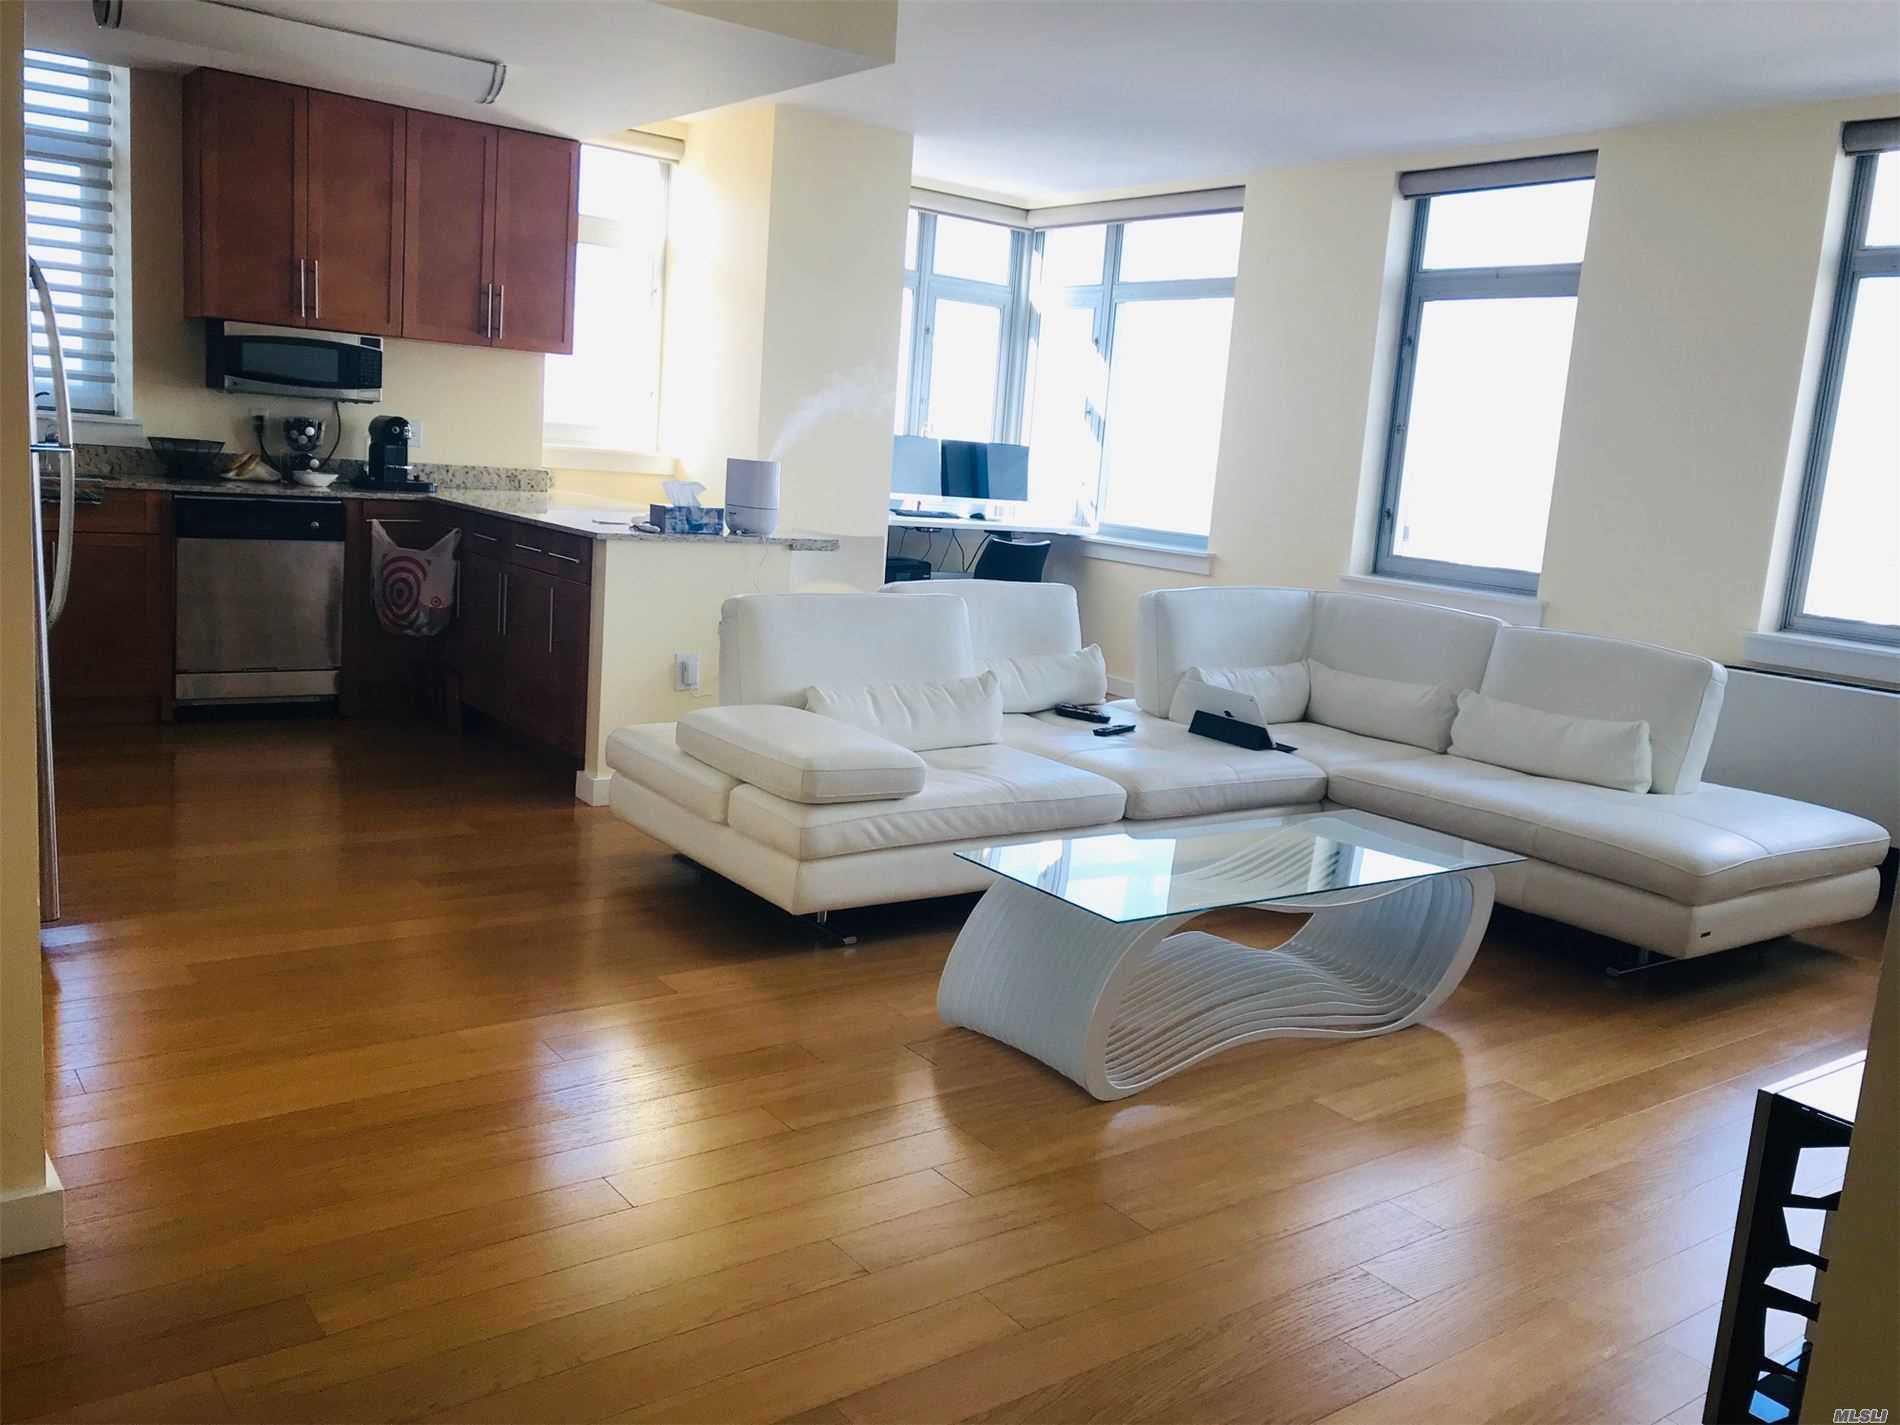 Property for sale at 40-28 College Point Boulevard # 1501, Flushing NY 11354, Flushing,  New York 11354